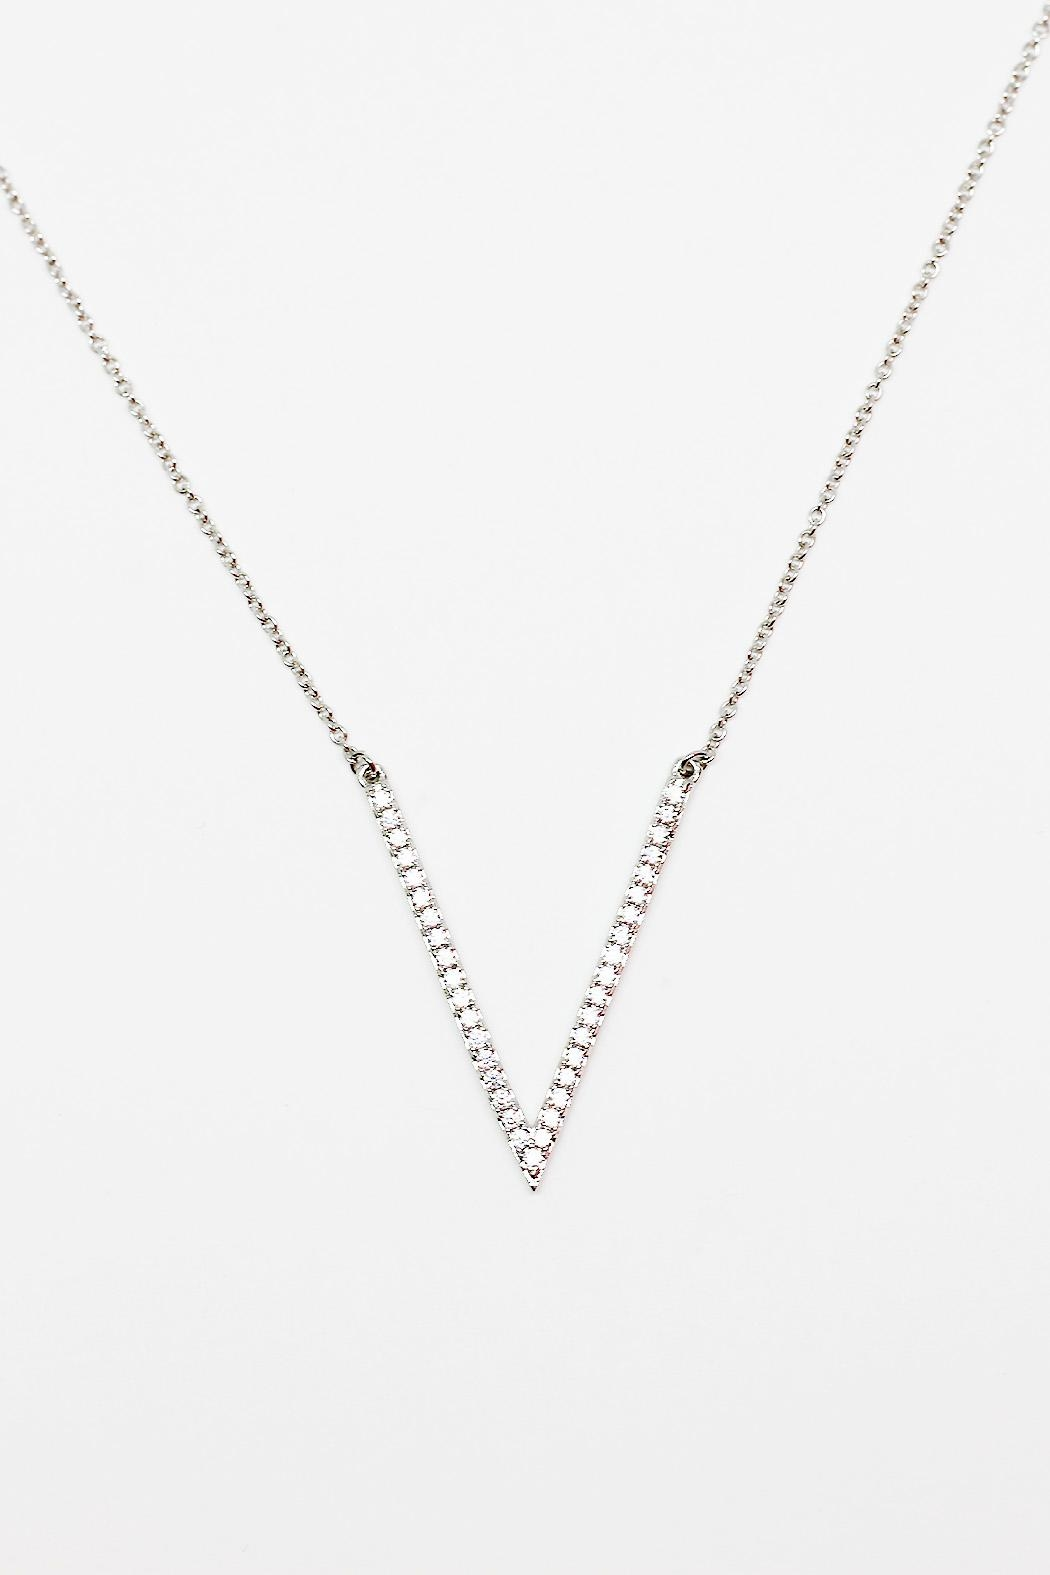 TINK TINK Rhodium Necklace & Zirconia - Front Cropped Image